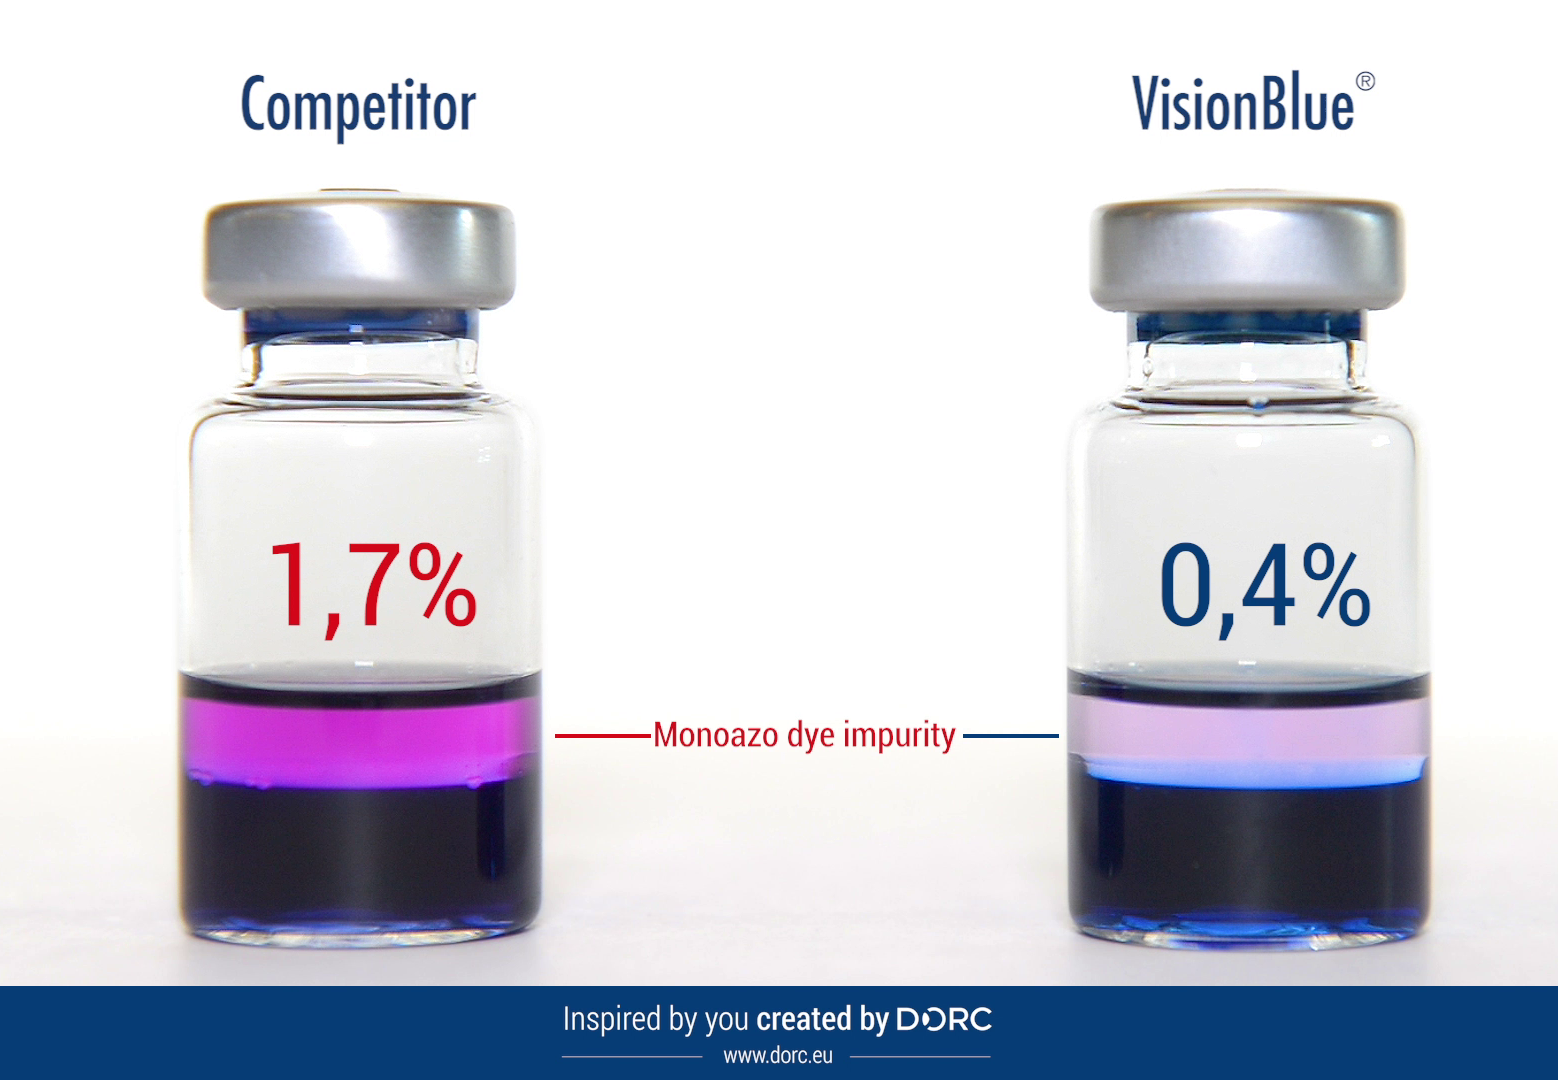 VisionBlue®: highly purified trypan blue with lowest recorded levels of mono-azo dye